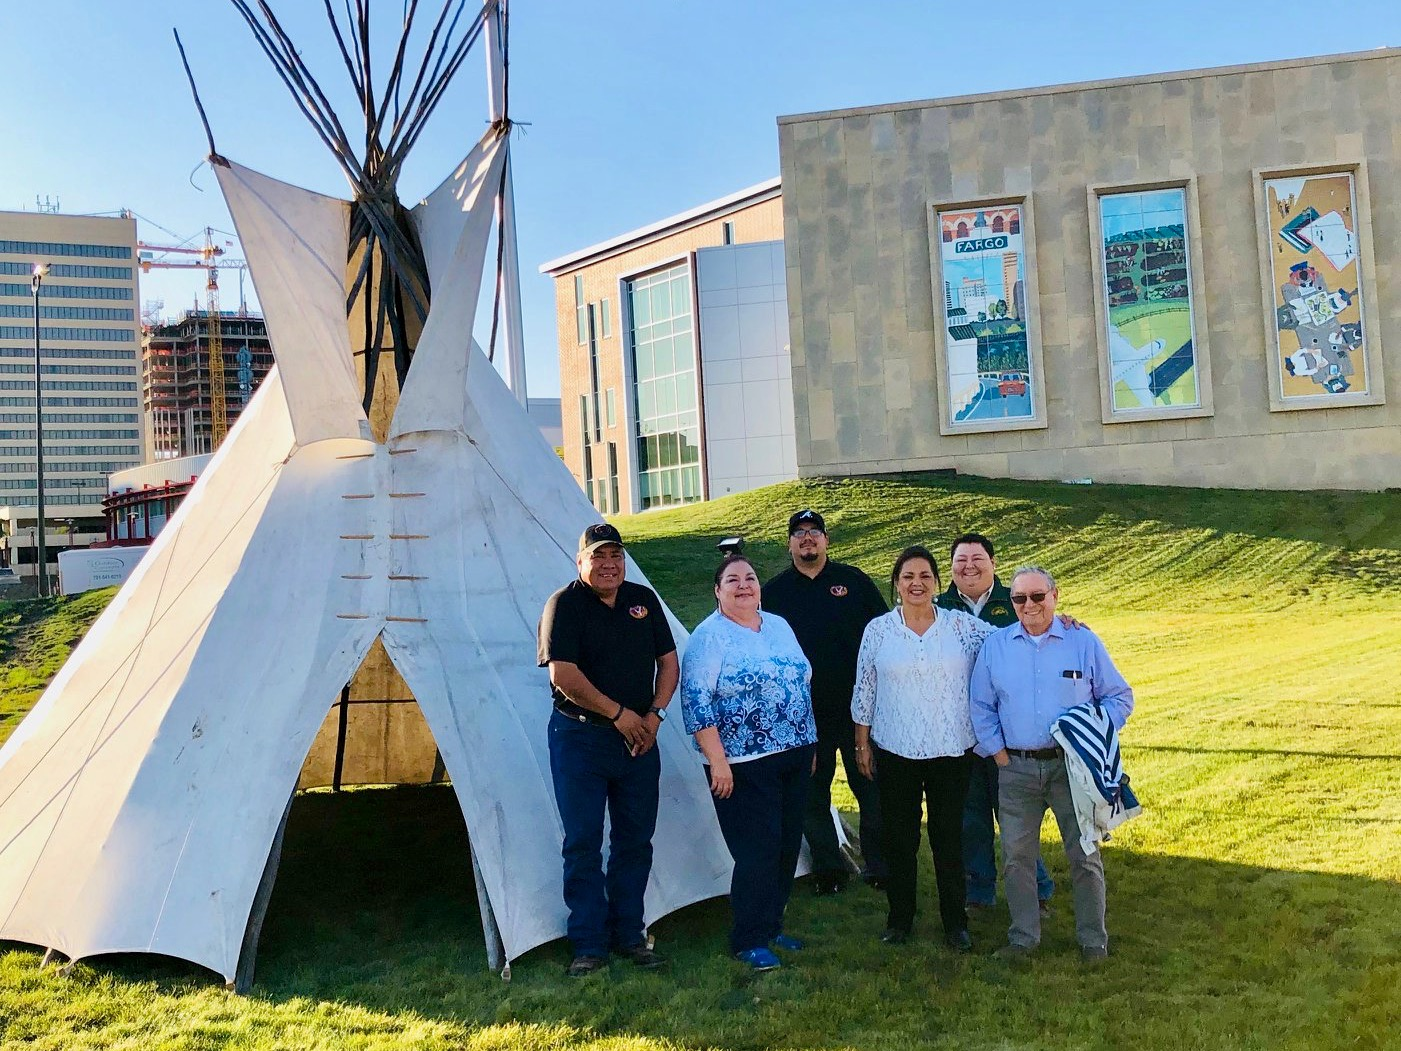 City in North Dakota shuts down sweat lodge used by urban Indian community